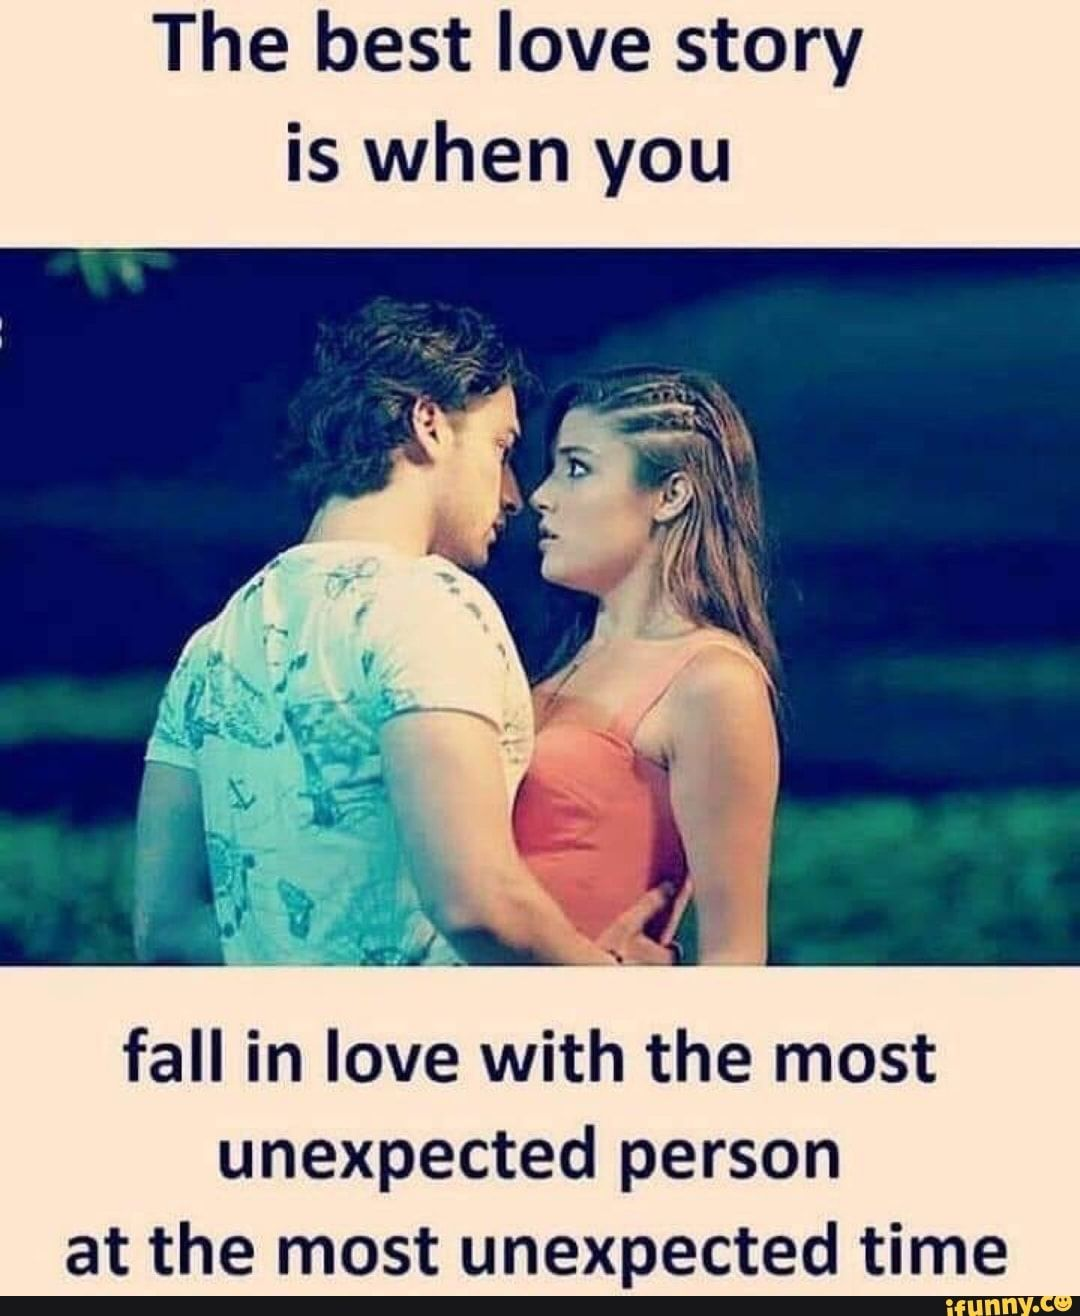 The Best Love Story Is When You Fall In Love With The Most Unexpected Person At The Most Unexpected Time Ifunny Couple Quotes Funny Fun Quotes Funny Friends Quotes Funny